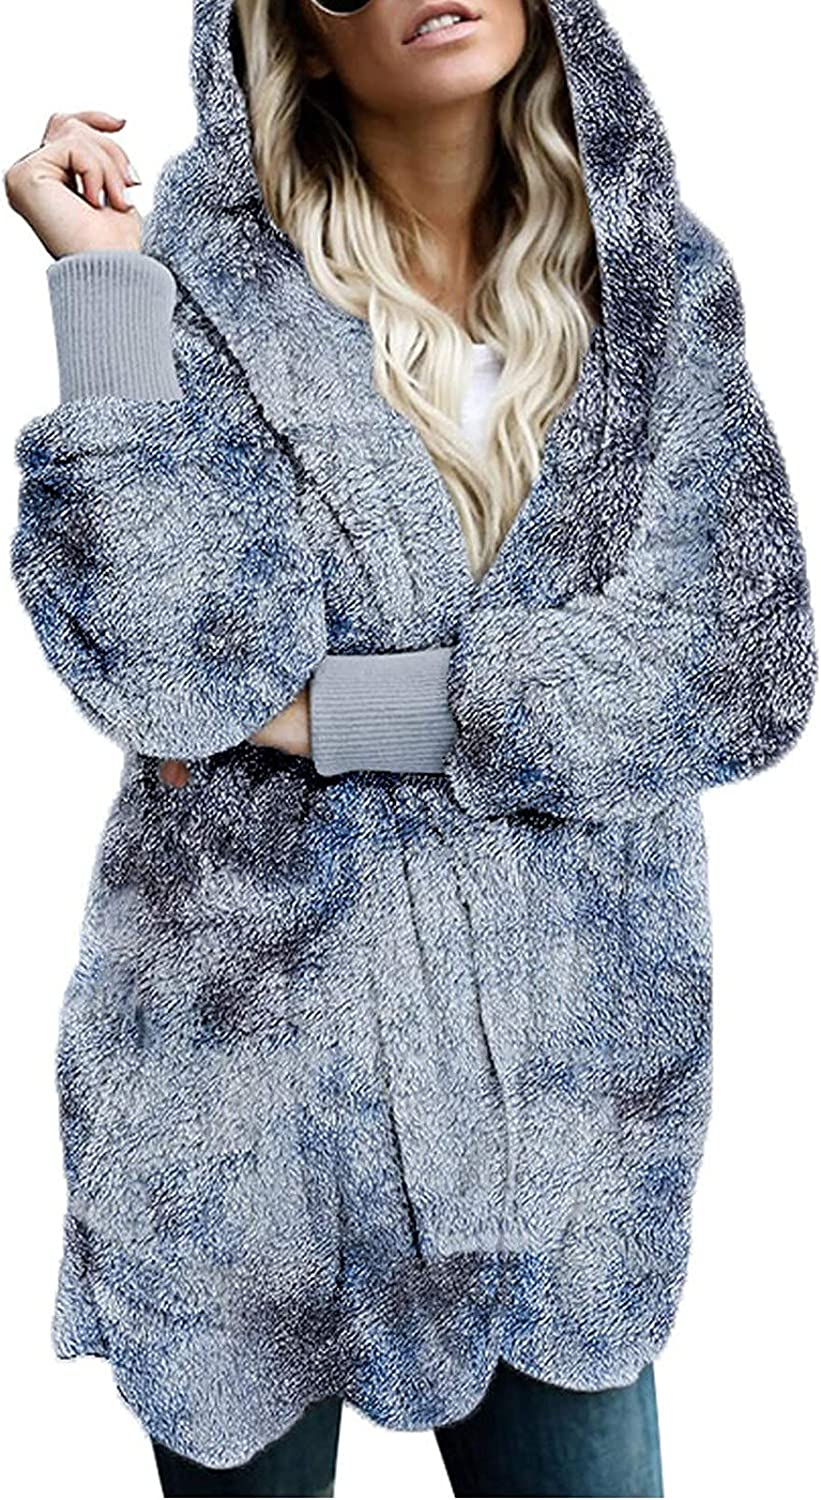 Womens Clothes Plush Tie-Dye Stitching Color Hoodie Warm Casual Full Sleeve Long Coat Comfy Loose Cardigan Top